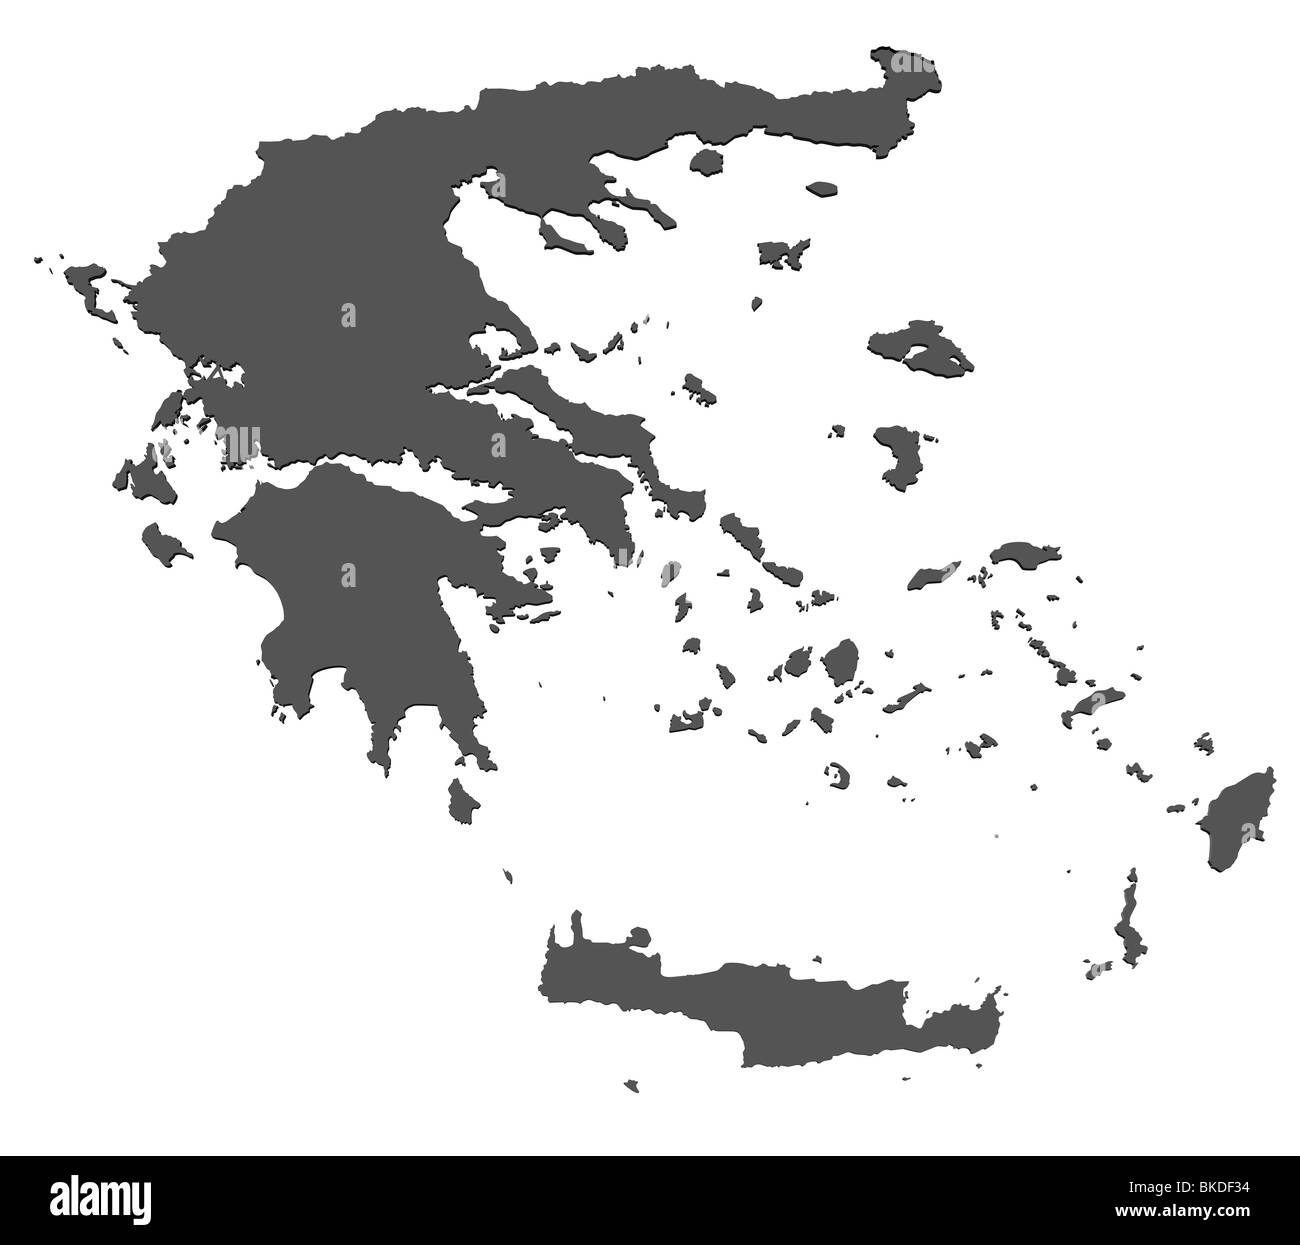 Greece Map Blank.3d Rendered Blank Map Of Greece Without Shadow Stock Photo 29186056